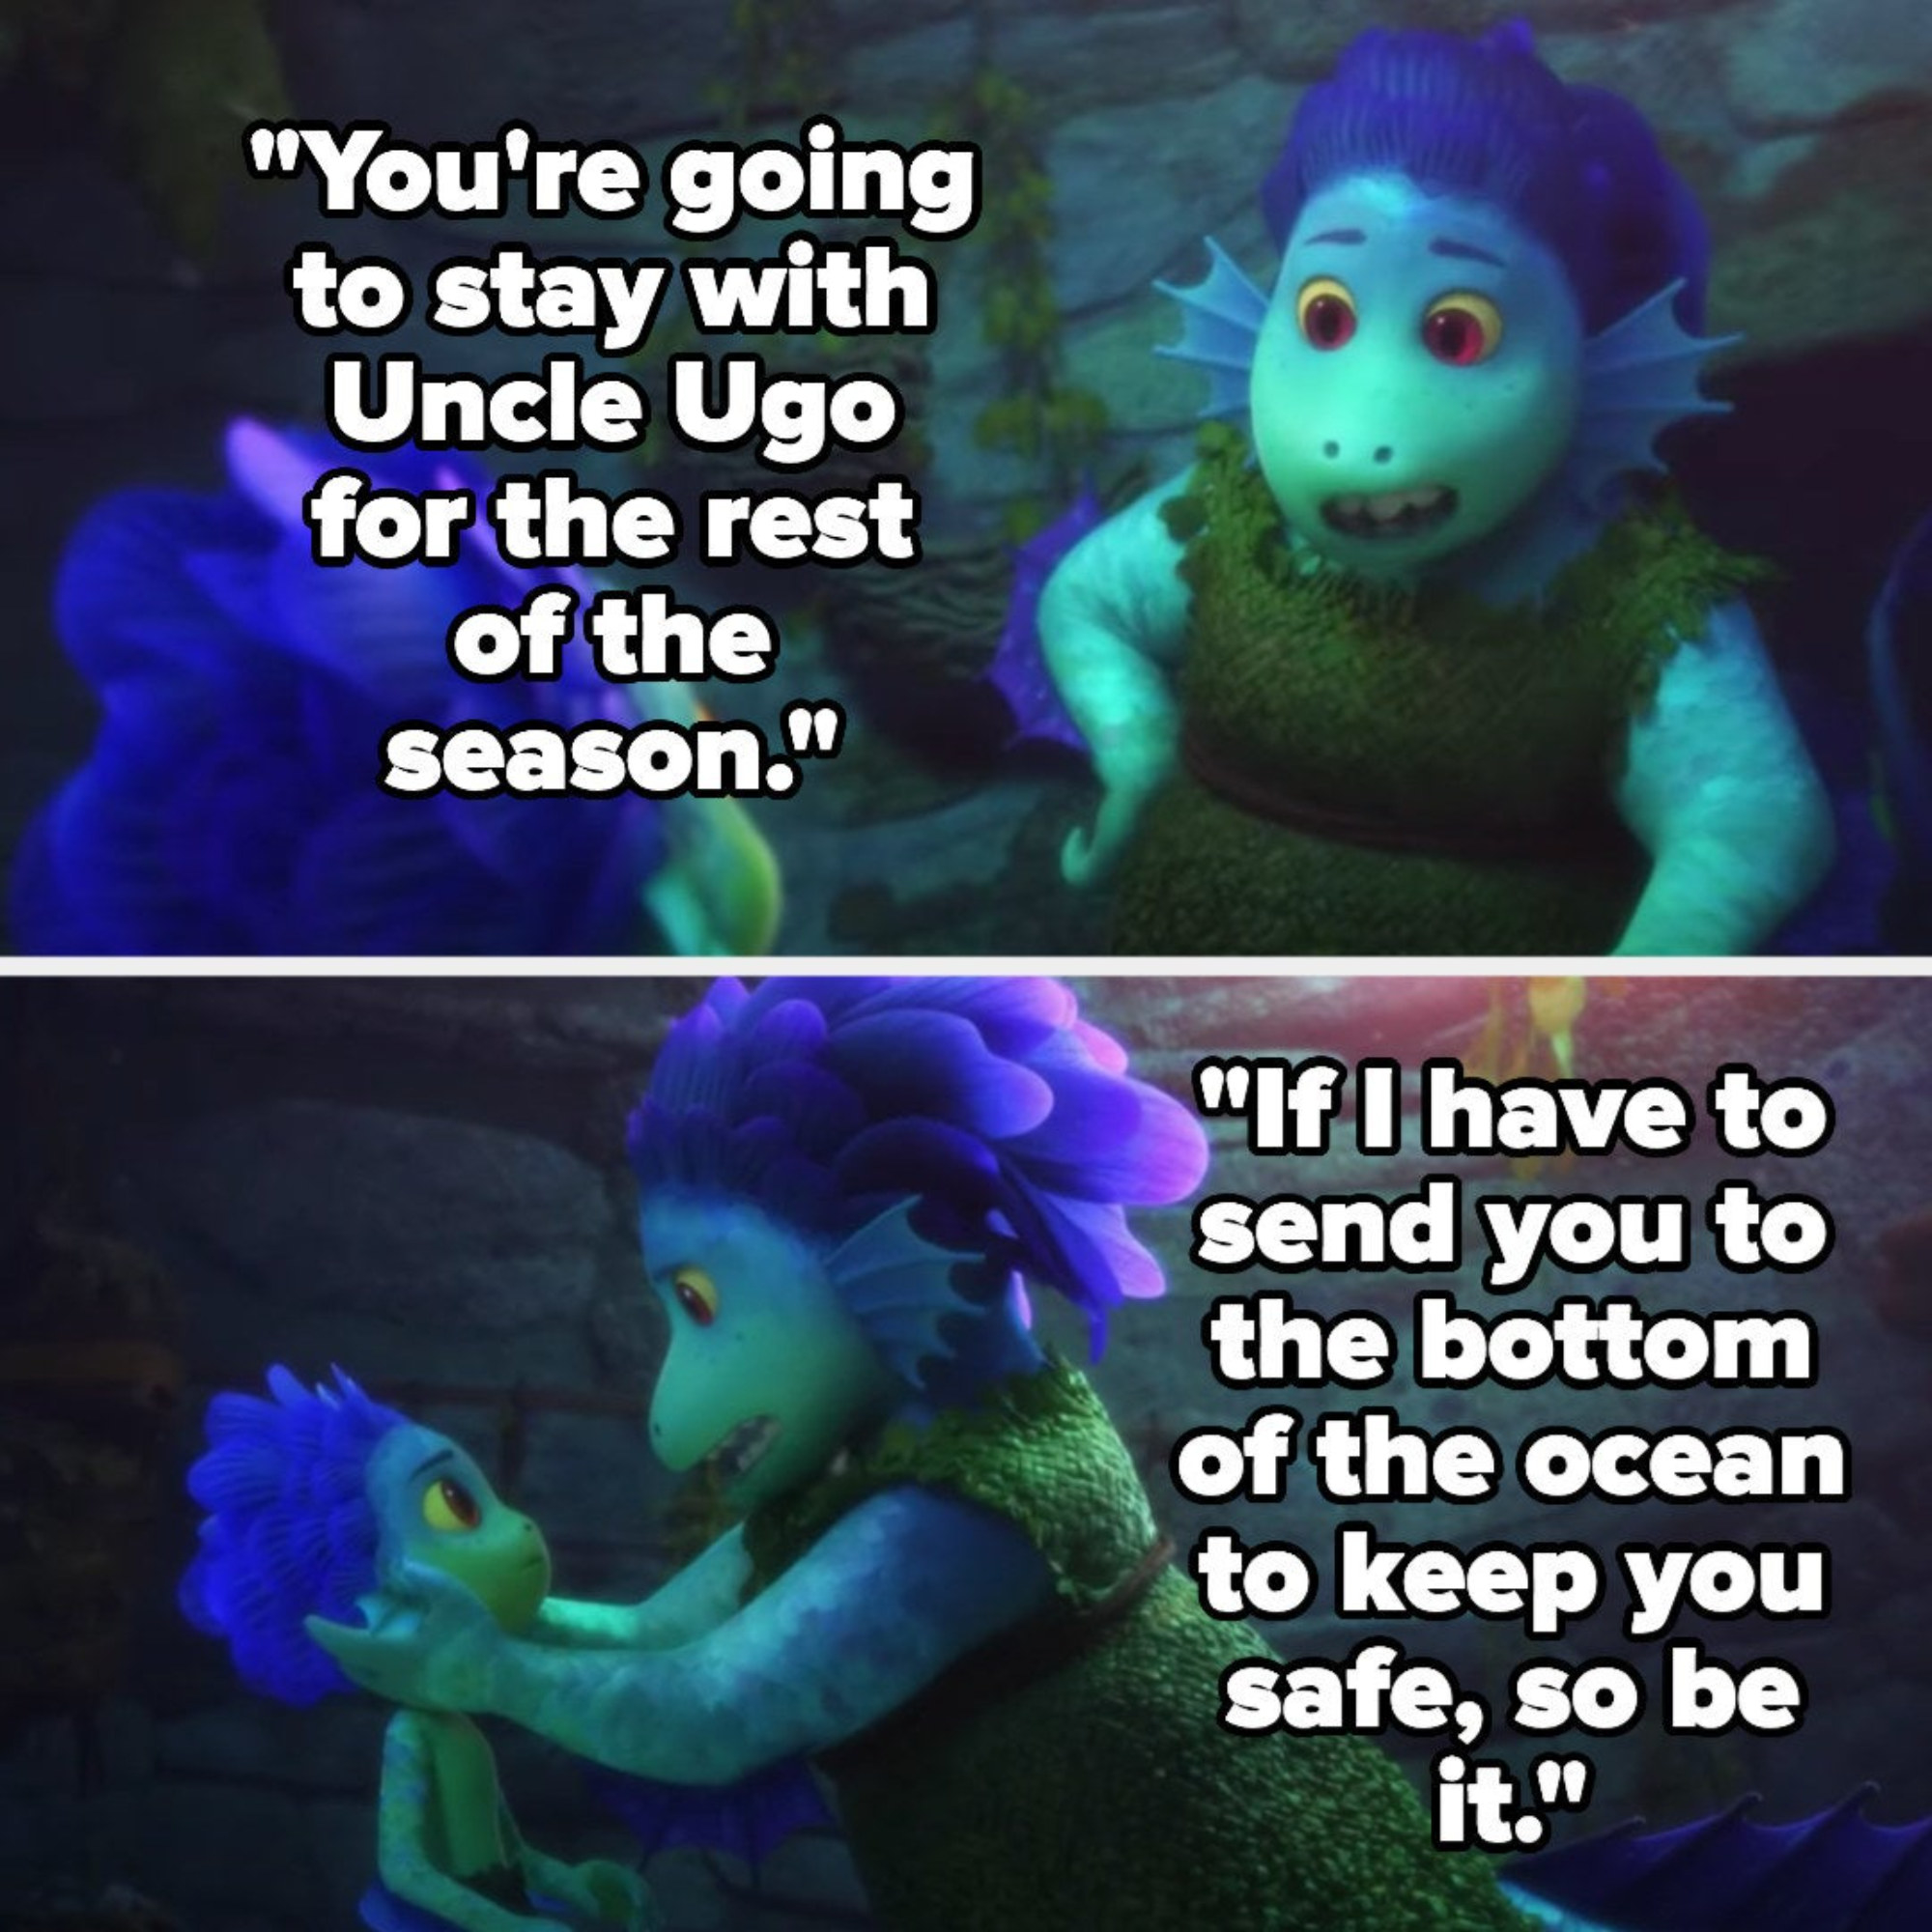 Luca's mom tells him he's staying with Uncle Ugo for the rest of the reason and that if she has to send him to the bottom of the ocean to keep him safe, she will